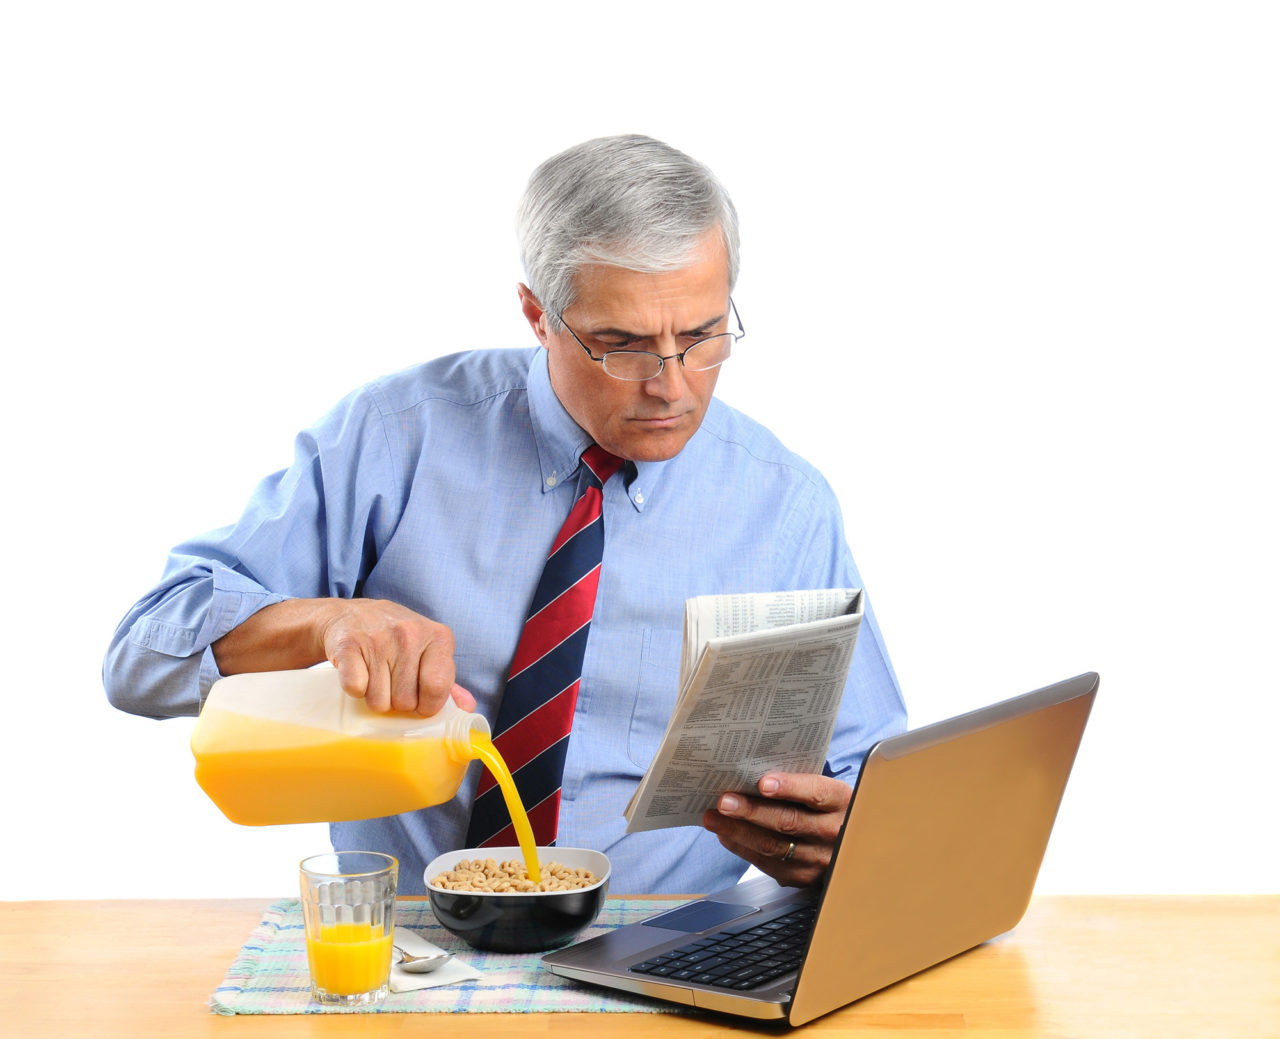 Middle Aged Man Pouring Orange Juice into His Cereal Bowl